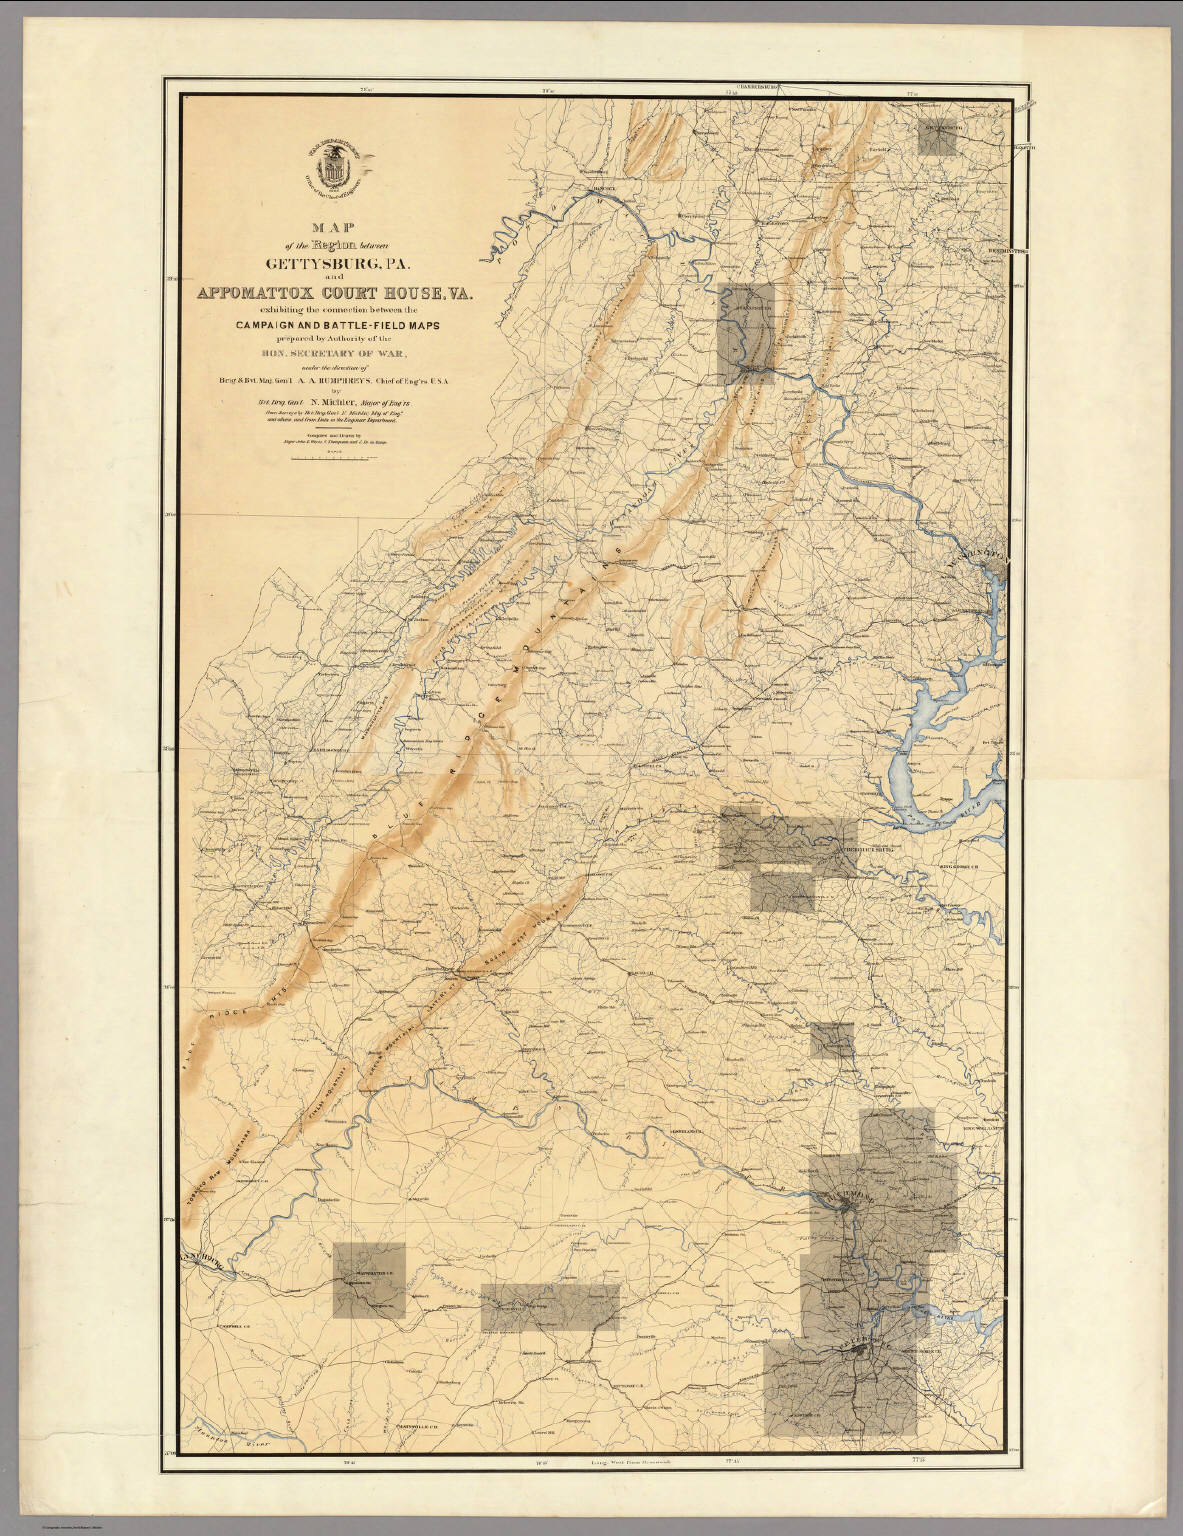 Map Of The Region Between Gettysburg Pa And Appomattox Court - Gettysburg on us map